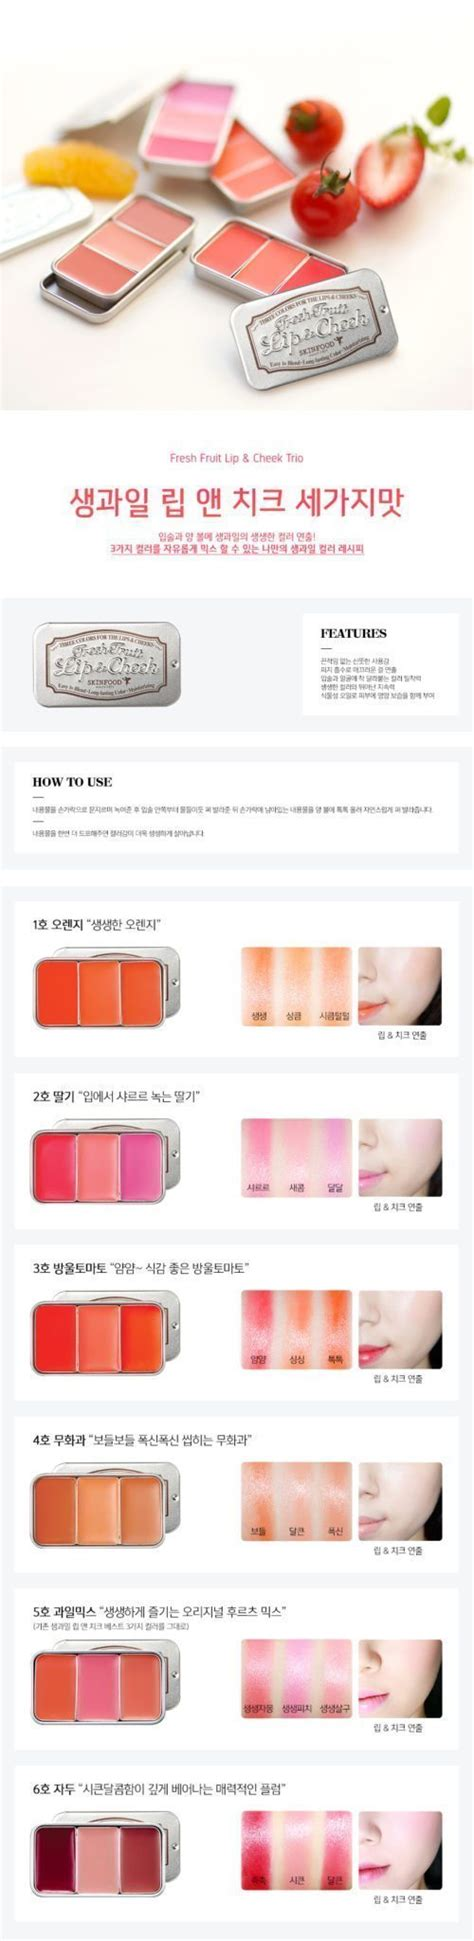 Skinfood Fruit Lip Cheek Trio skinfood fresh fruit lip cheek trio korean